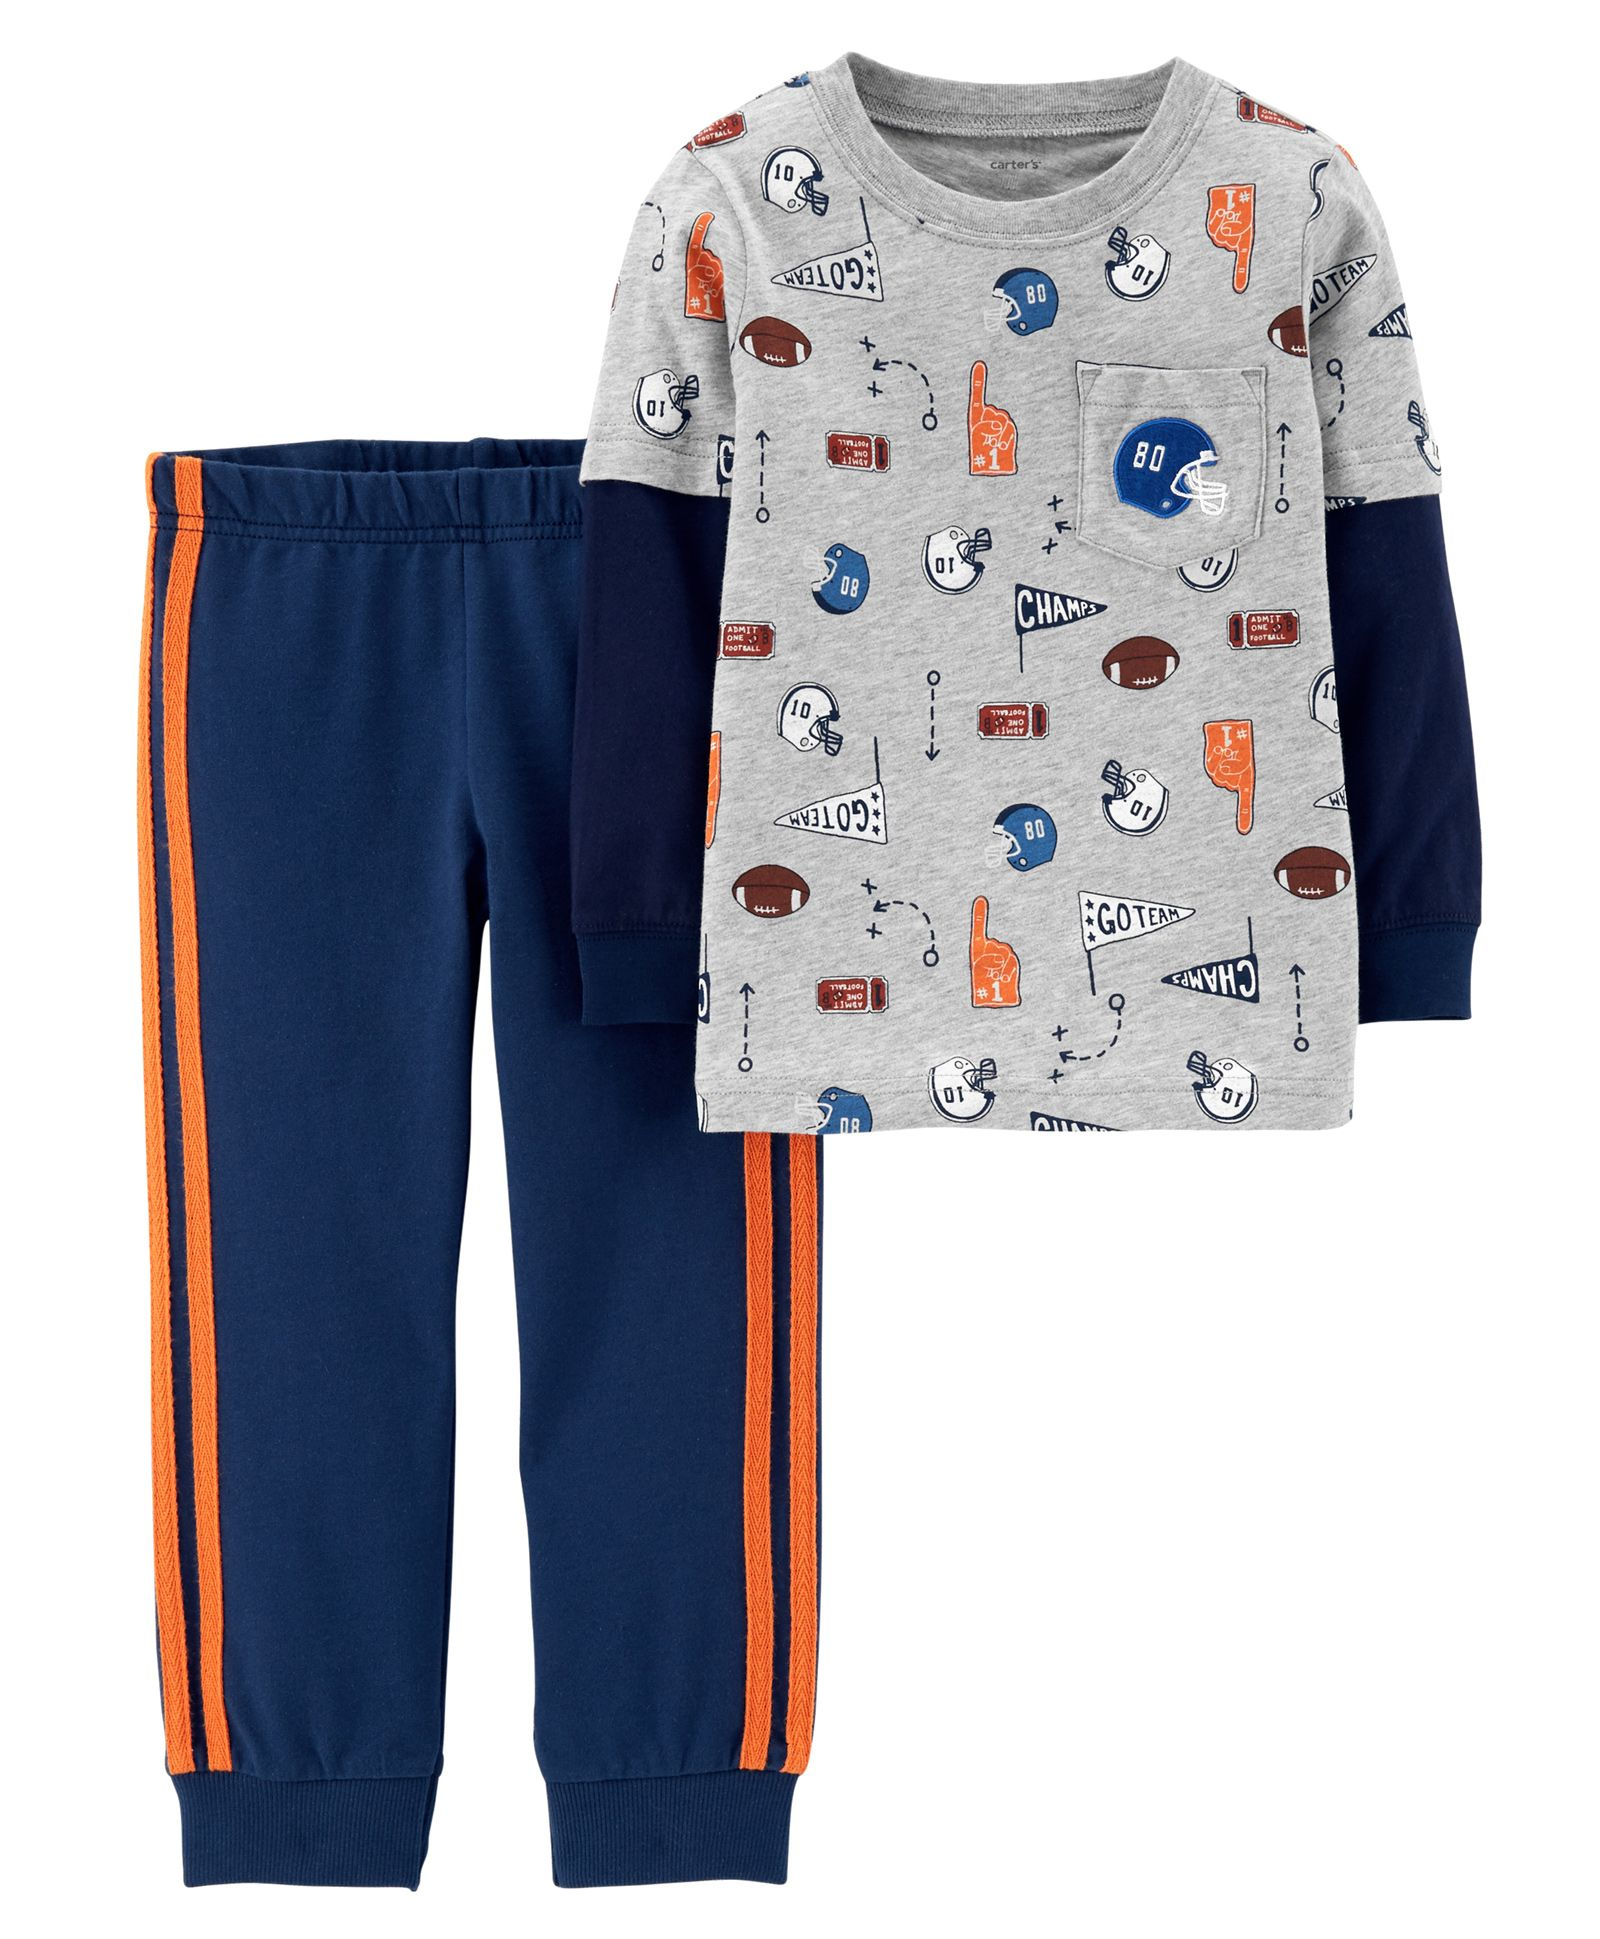 7b1aaa734 Carter s 2 Piece Layered Look Sports Tee   French Terry Jogger Set